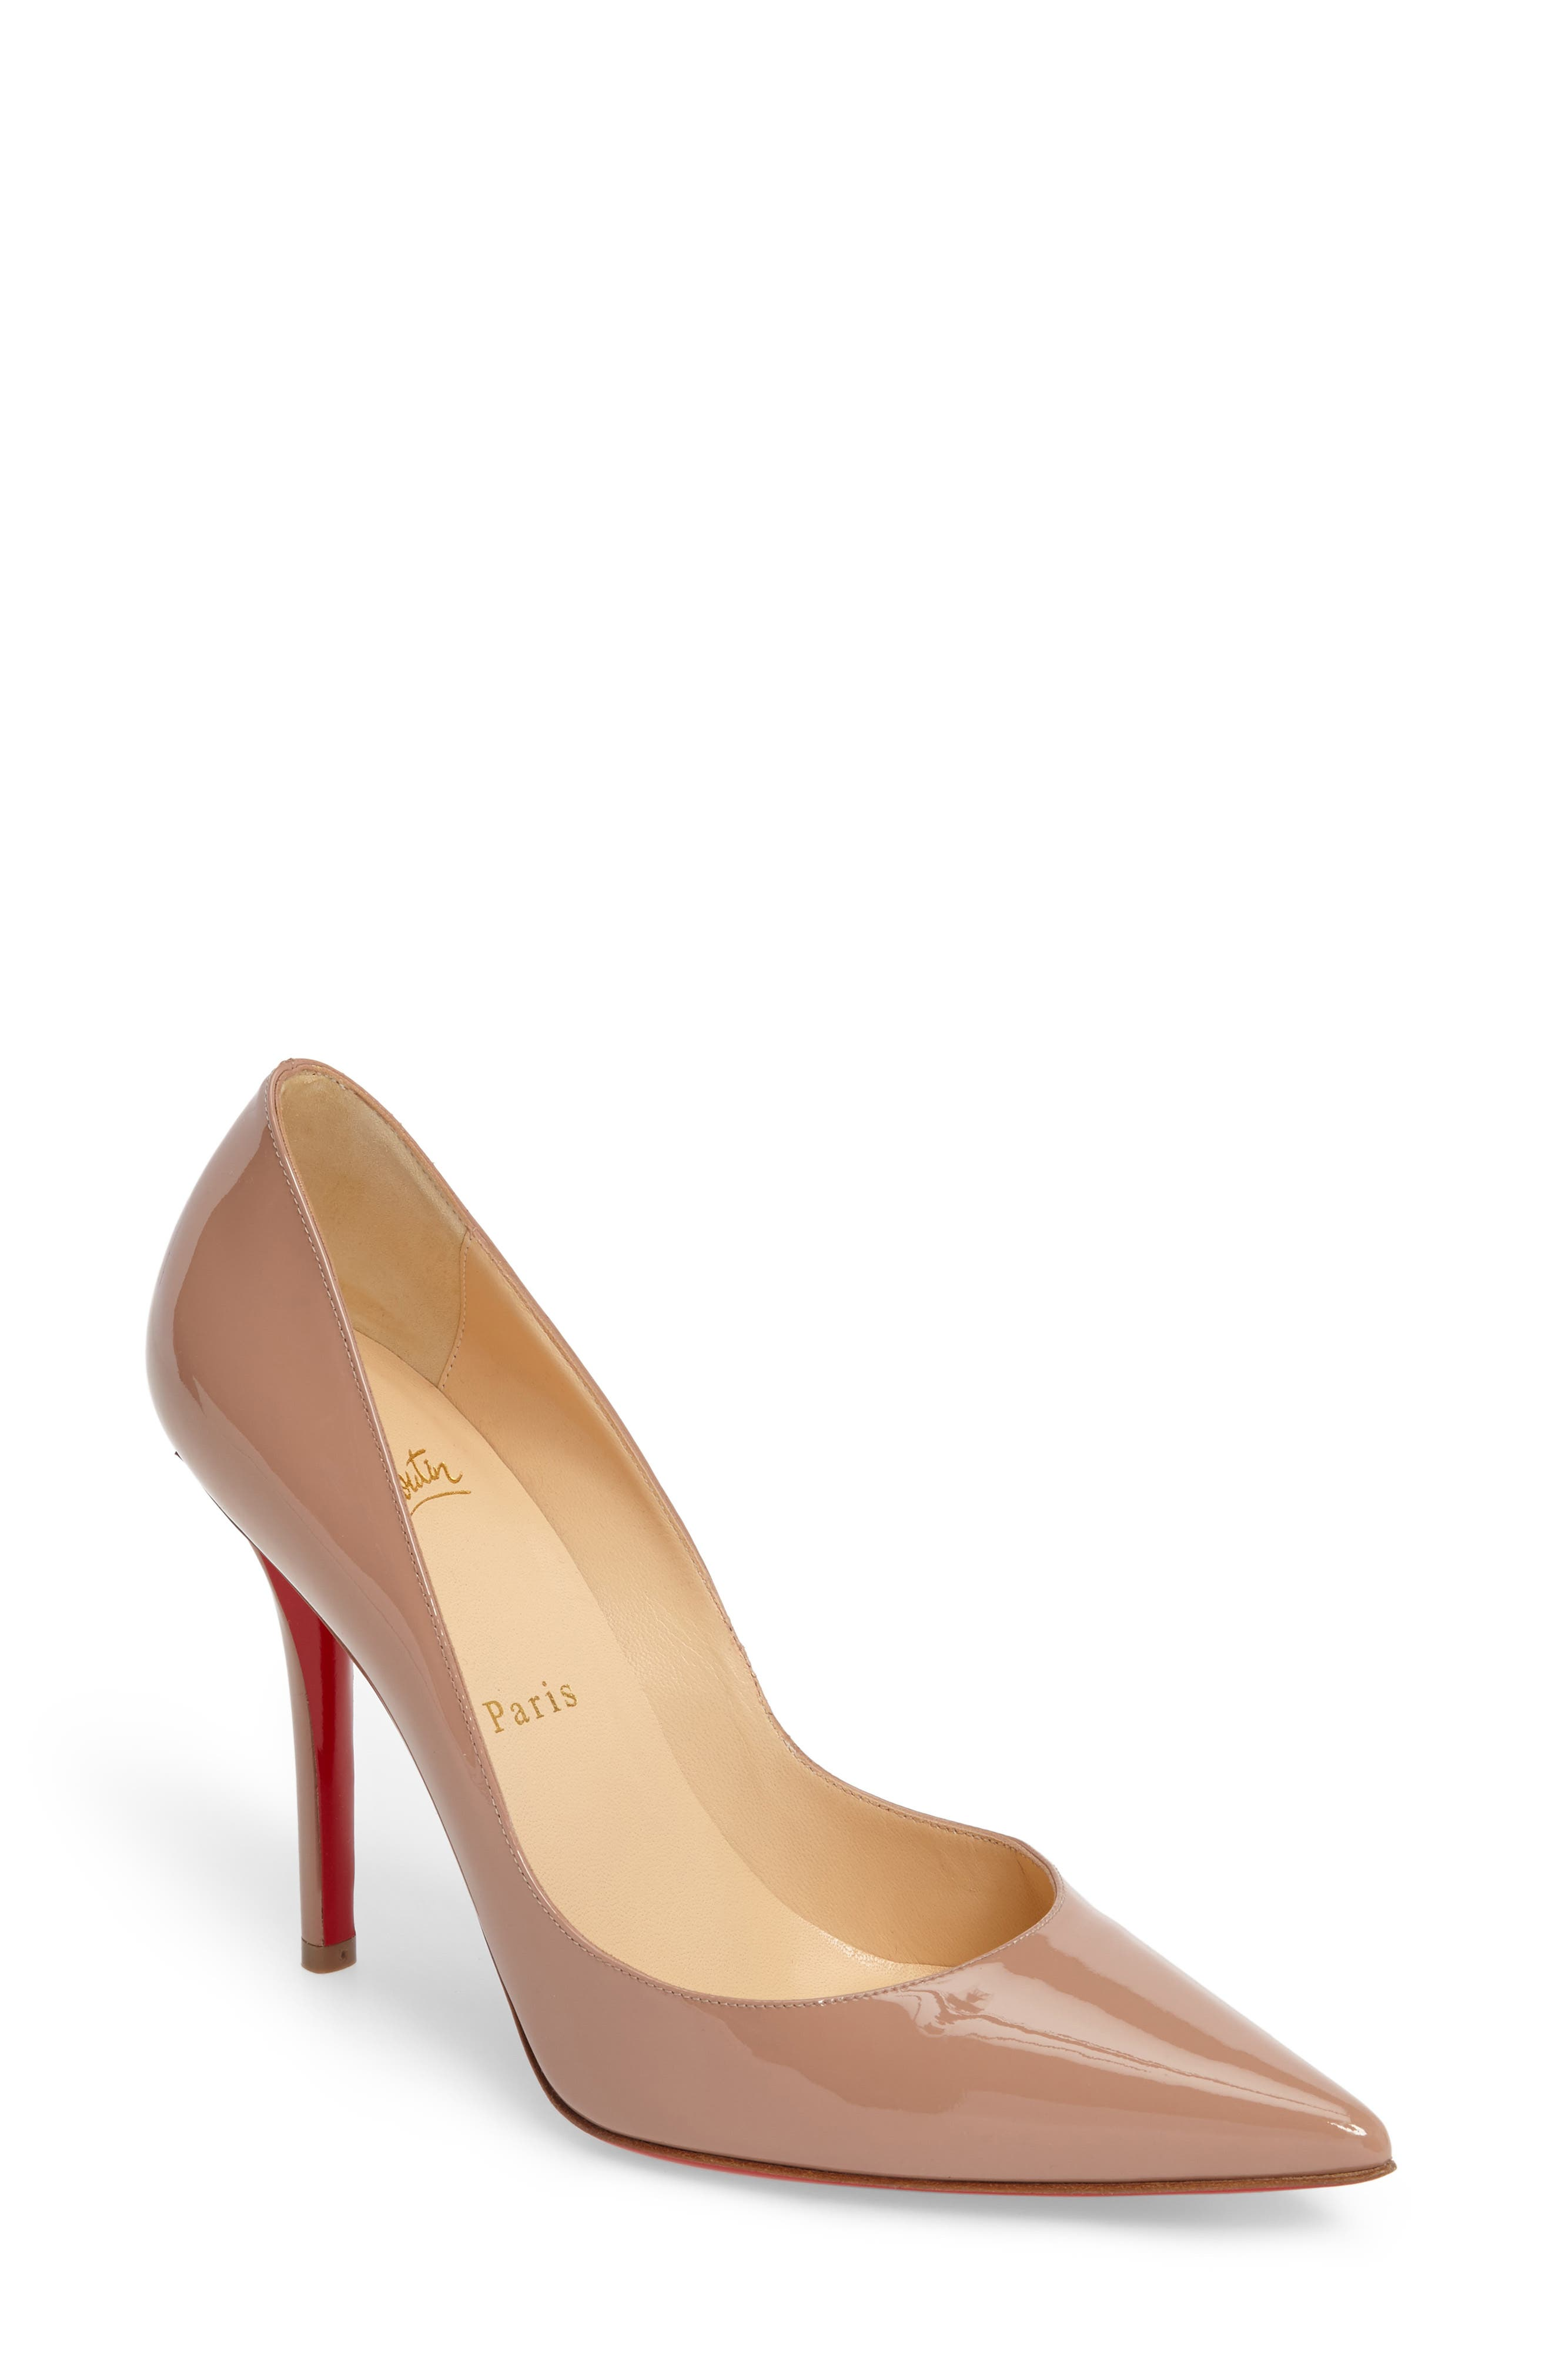 Alternate Image 1 Selected - Christian Louboutin Apostrophy Pointy Toe Pump (Women)